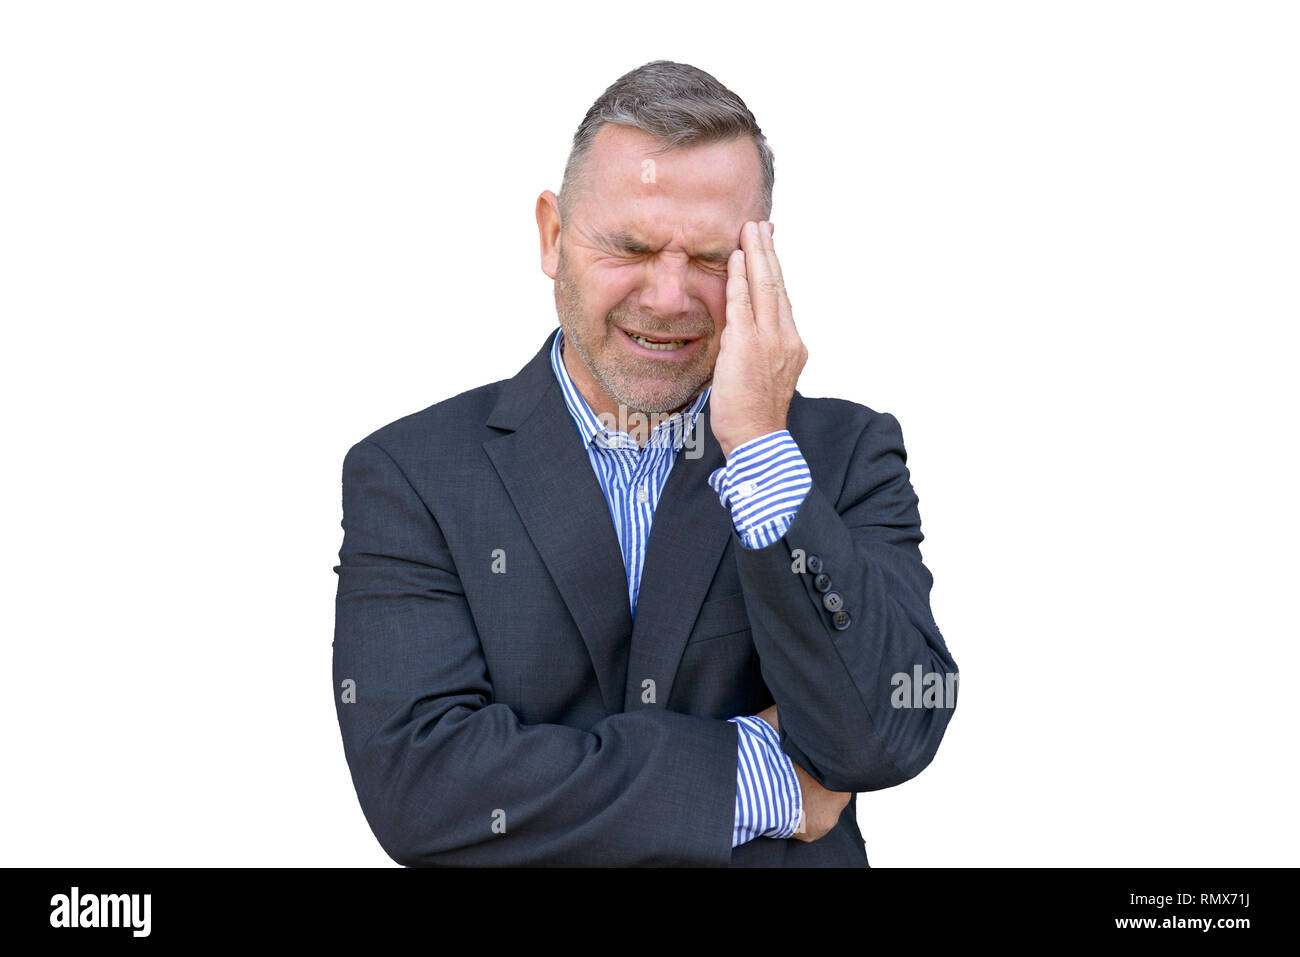 Stressed businessman, or suffering from a headache, standing with his hand to his temple grimacing against white background - Stock Image